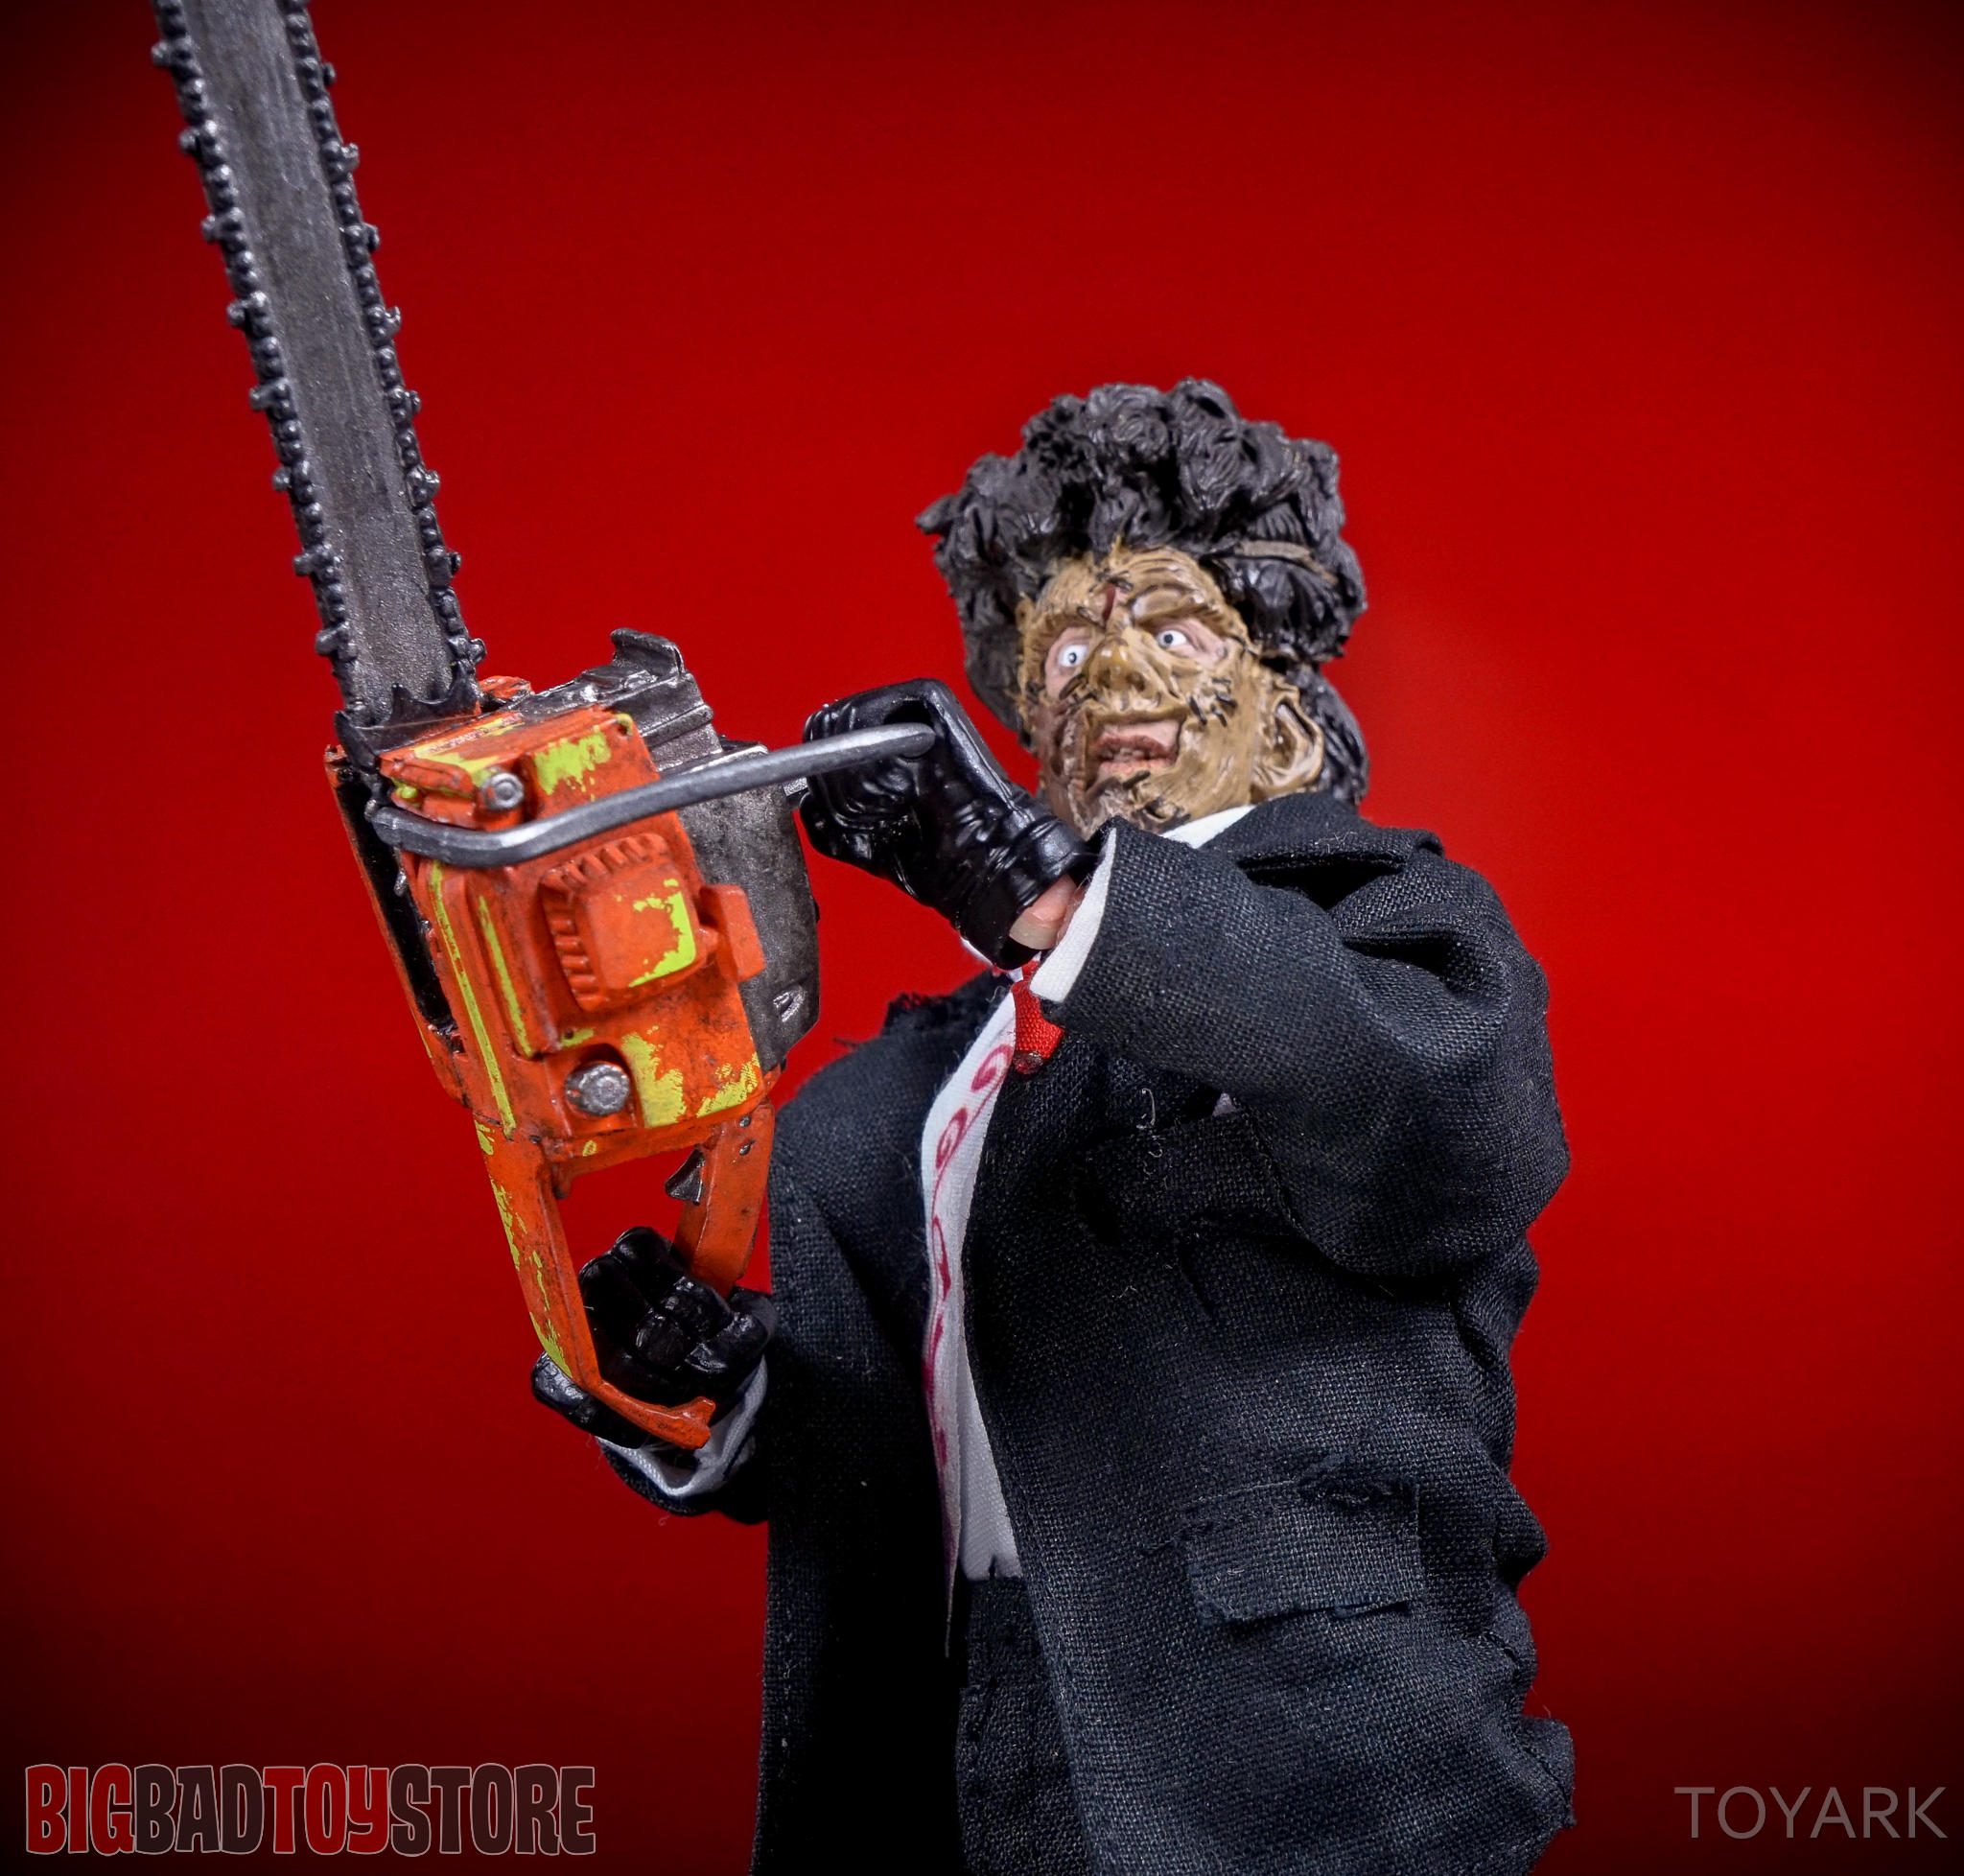 http://news.toyark.com/wp-content/uploads/sites/4/2016/07/NECA-TCM2-Leatherface-018.jpg